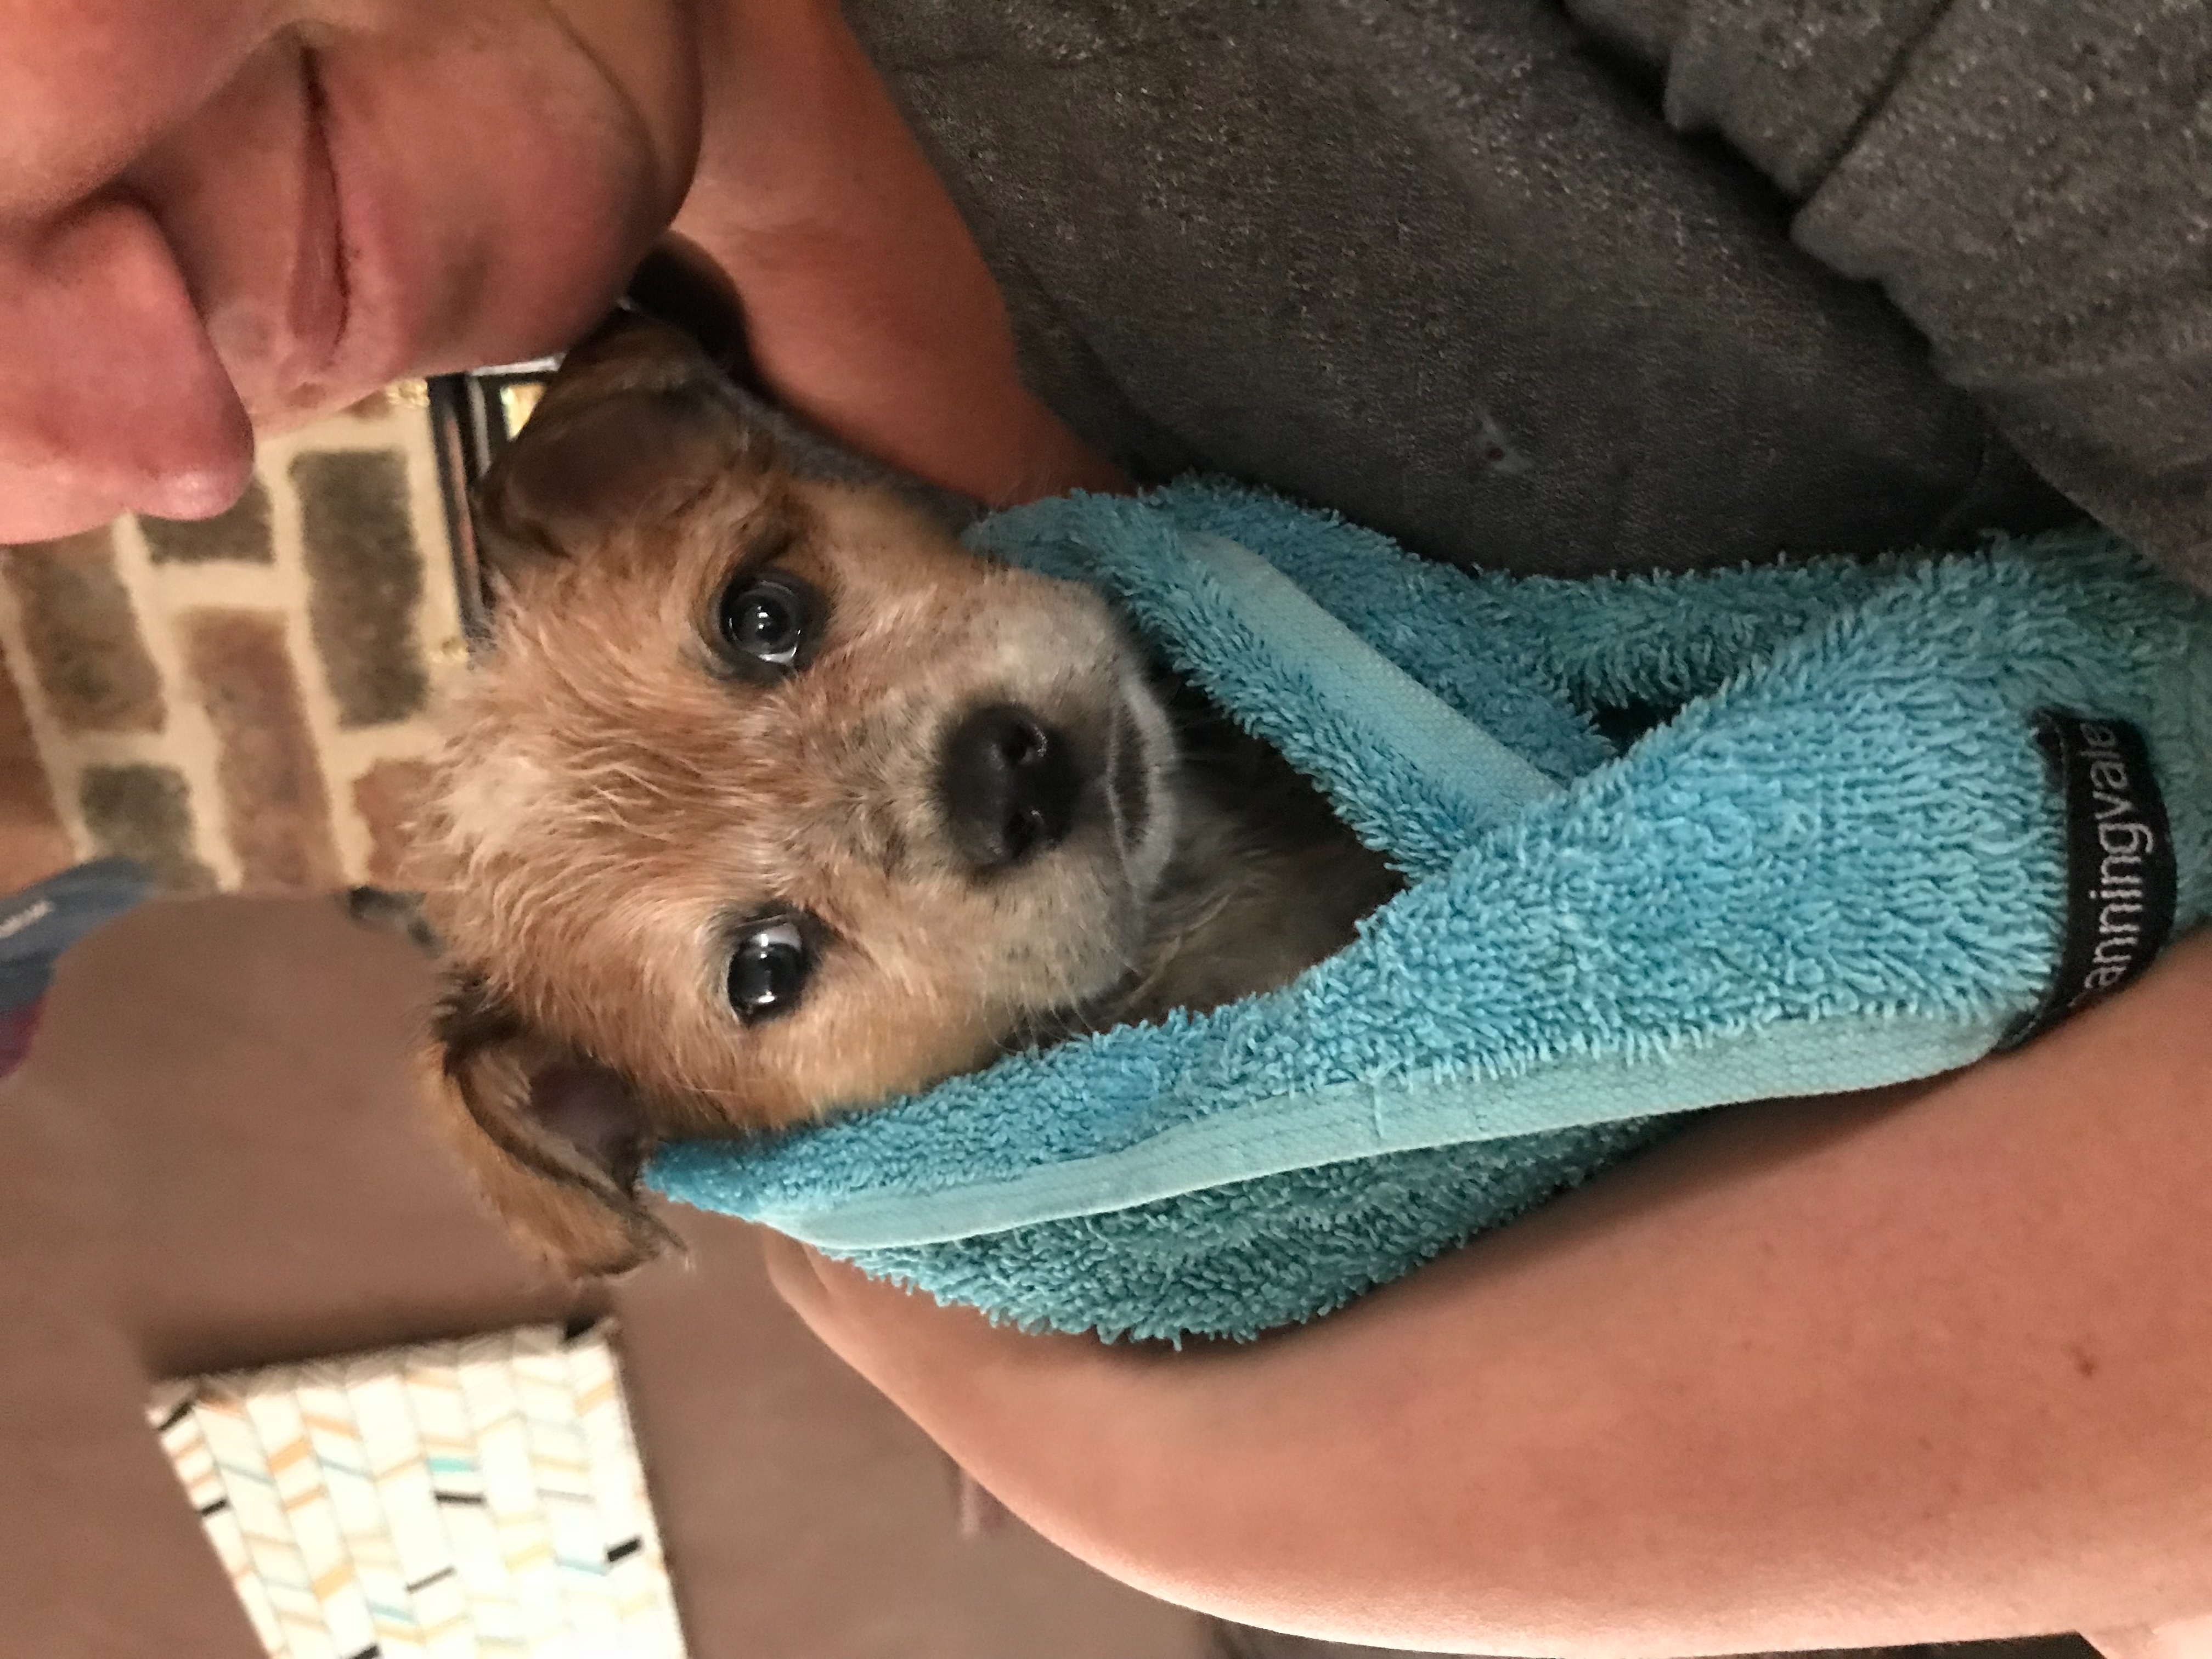 Puppy bath time is always fun